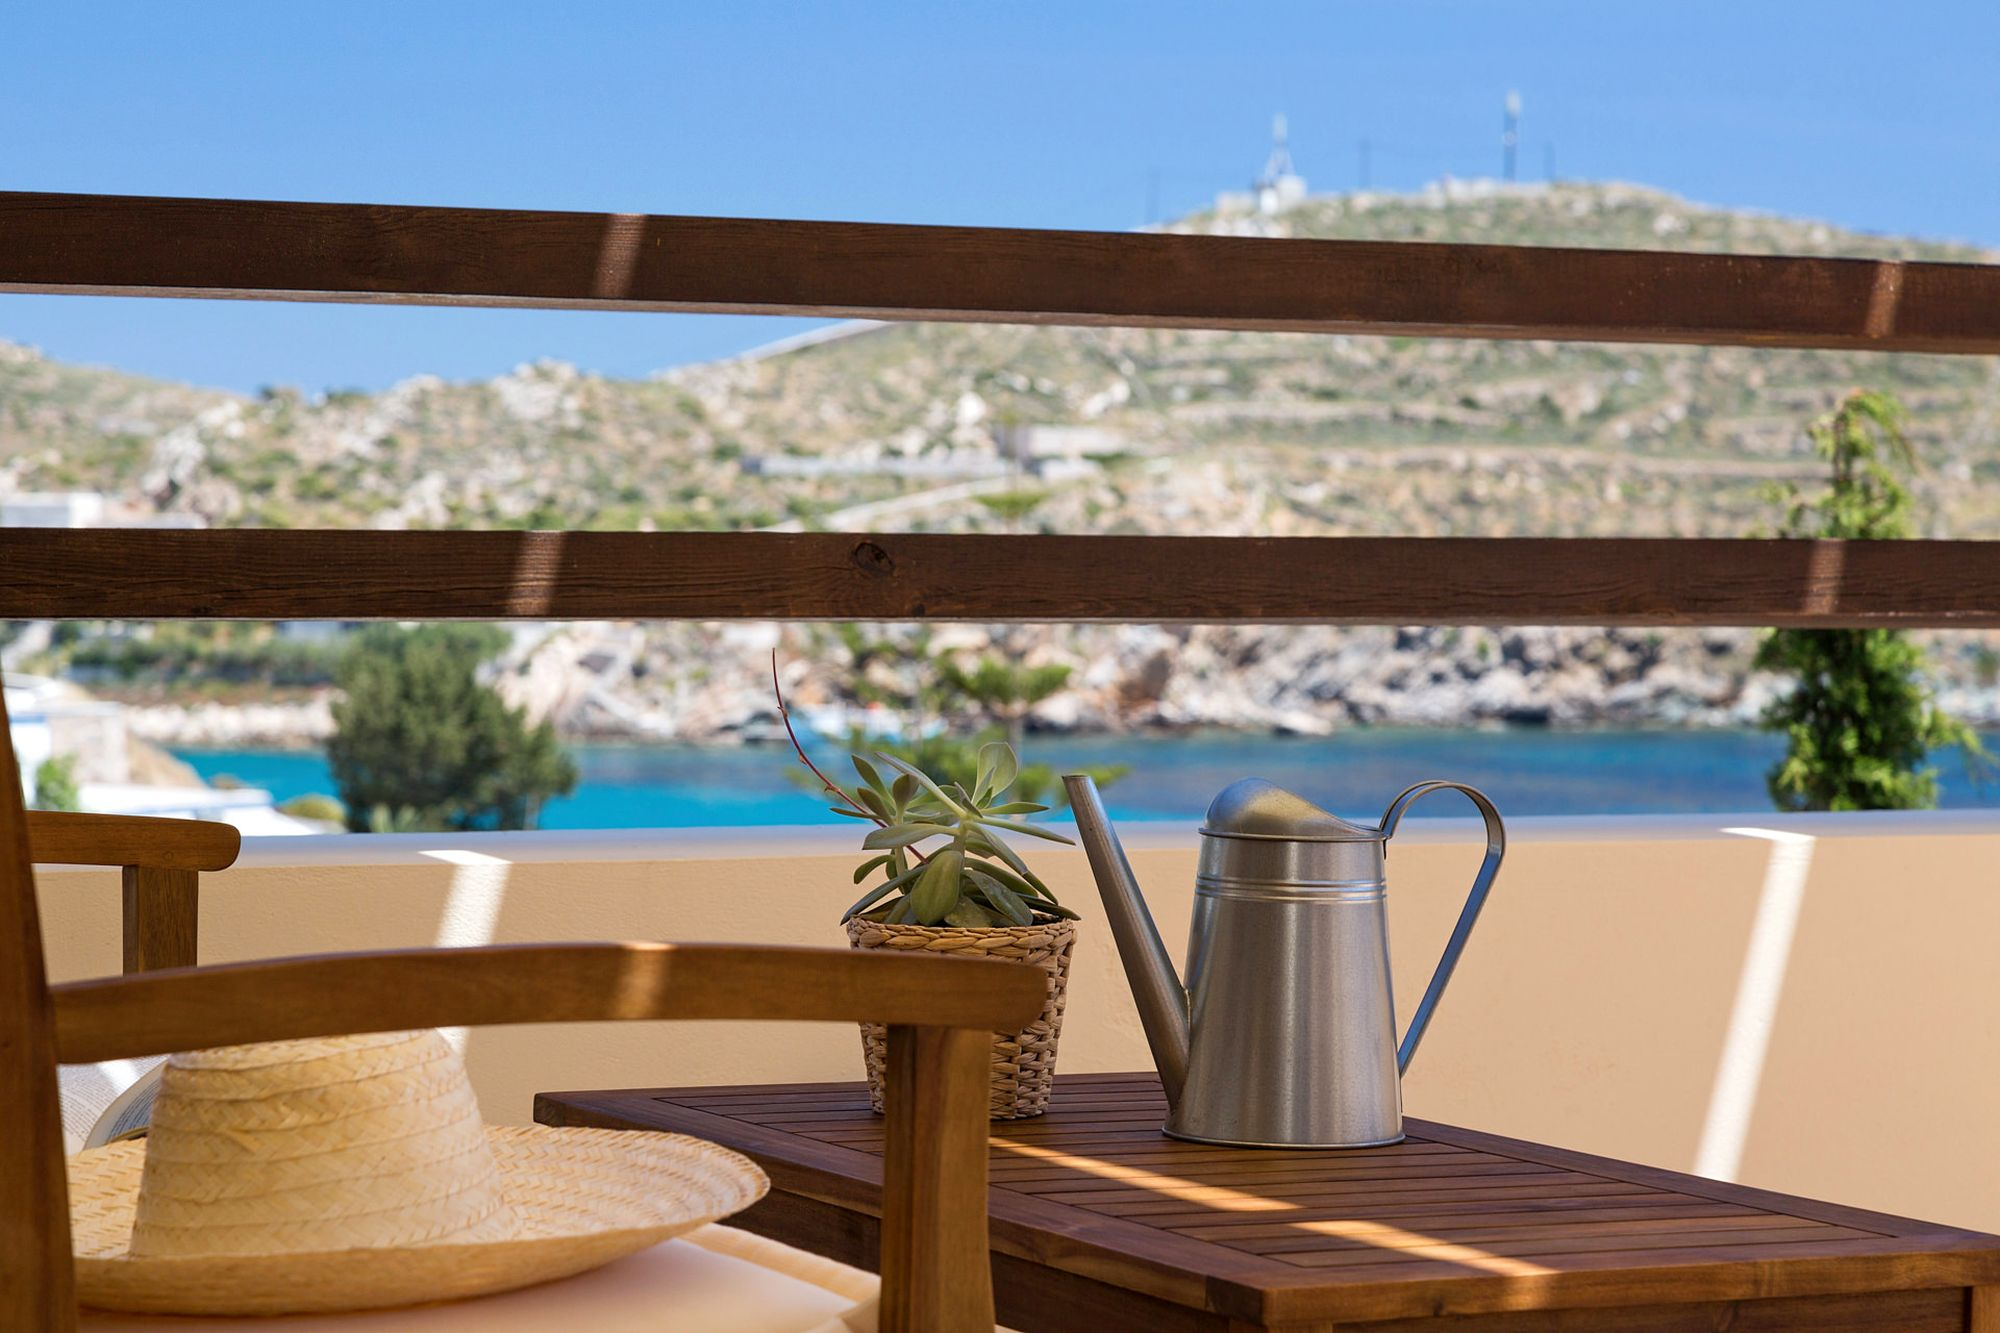 The sea view from a Syra Suite veranda furnished with an exterior sofa and a coffee table with a small decorative watering can on it.